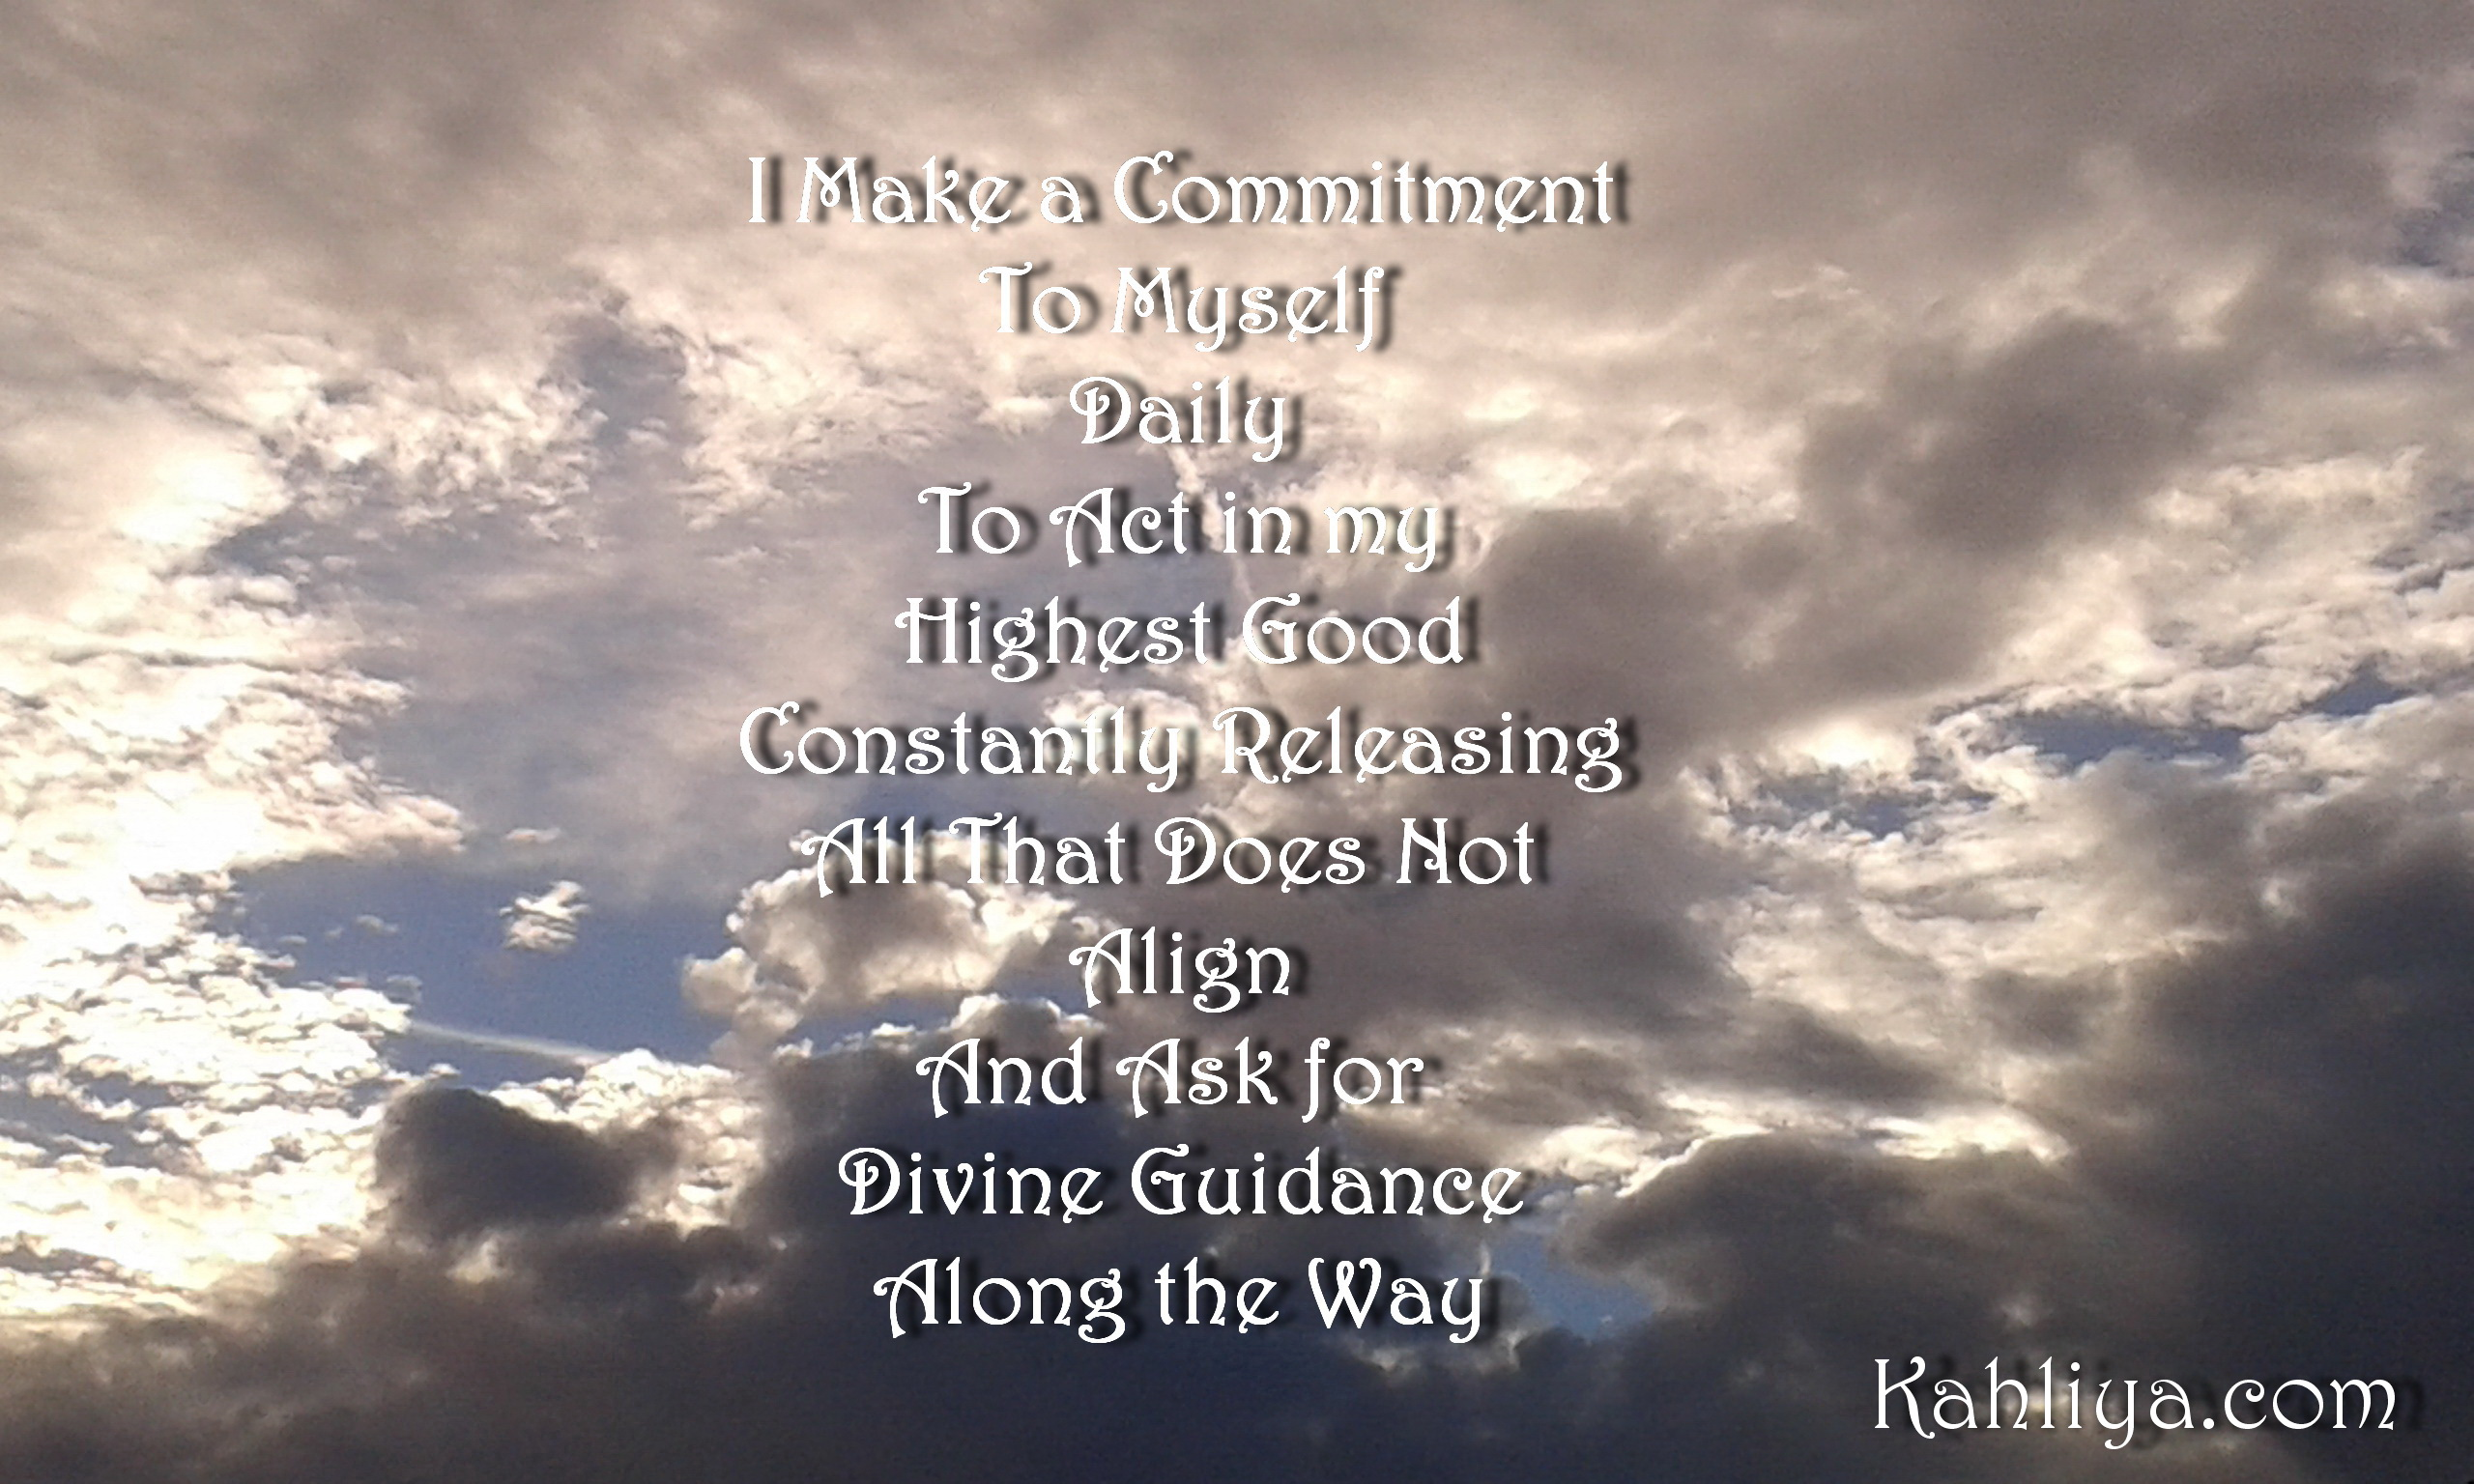 commitment unsind fixed snd